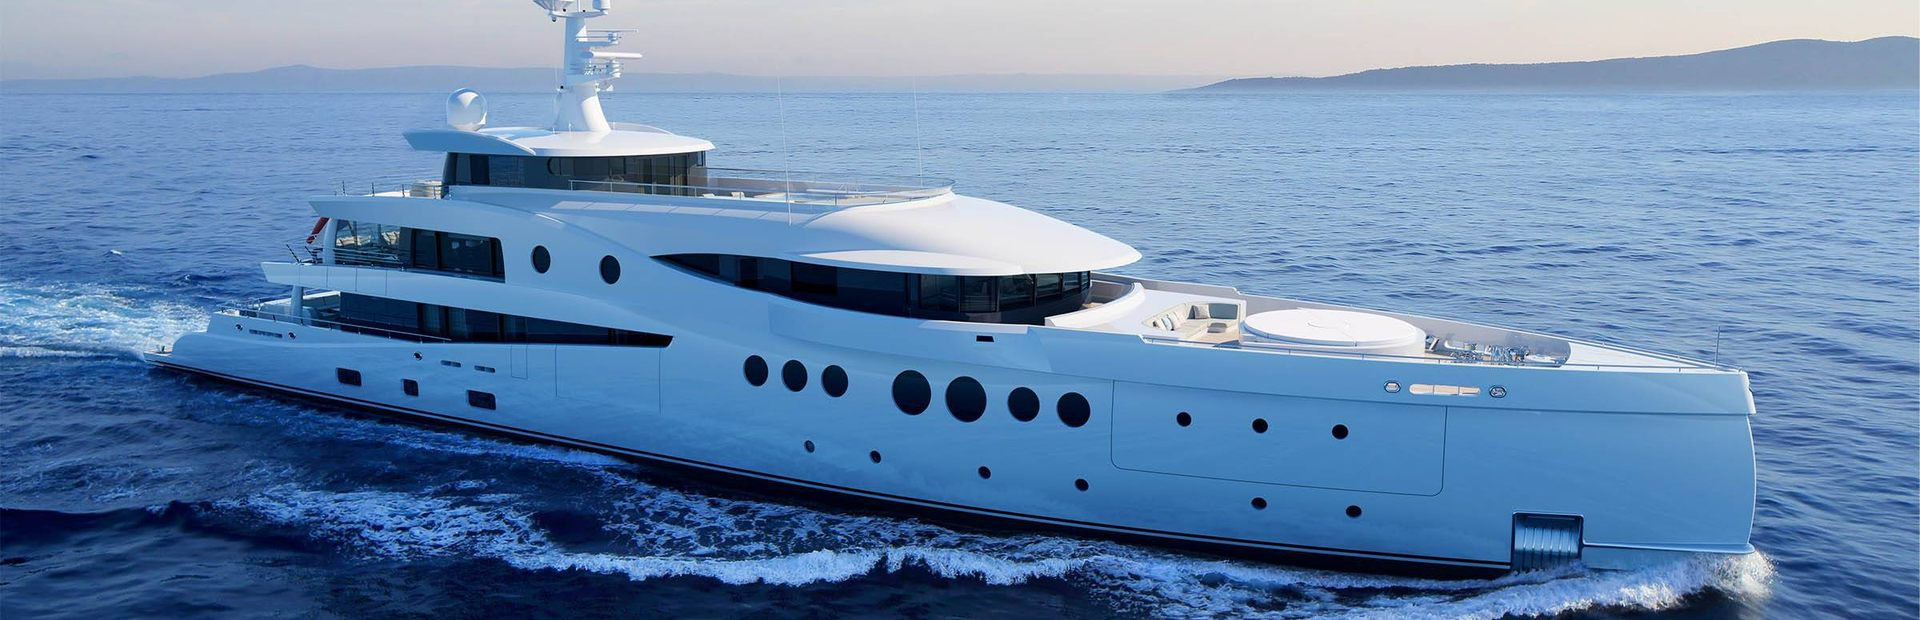 Amels 206 Yacht Charter